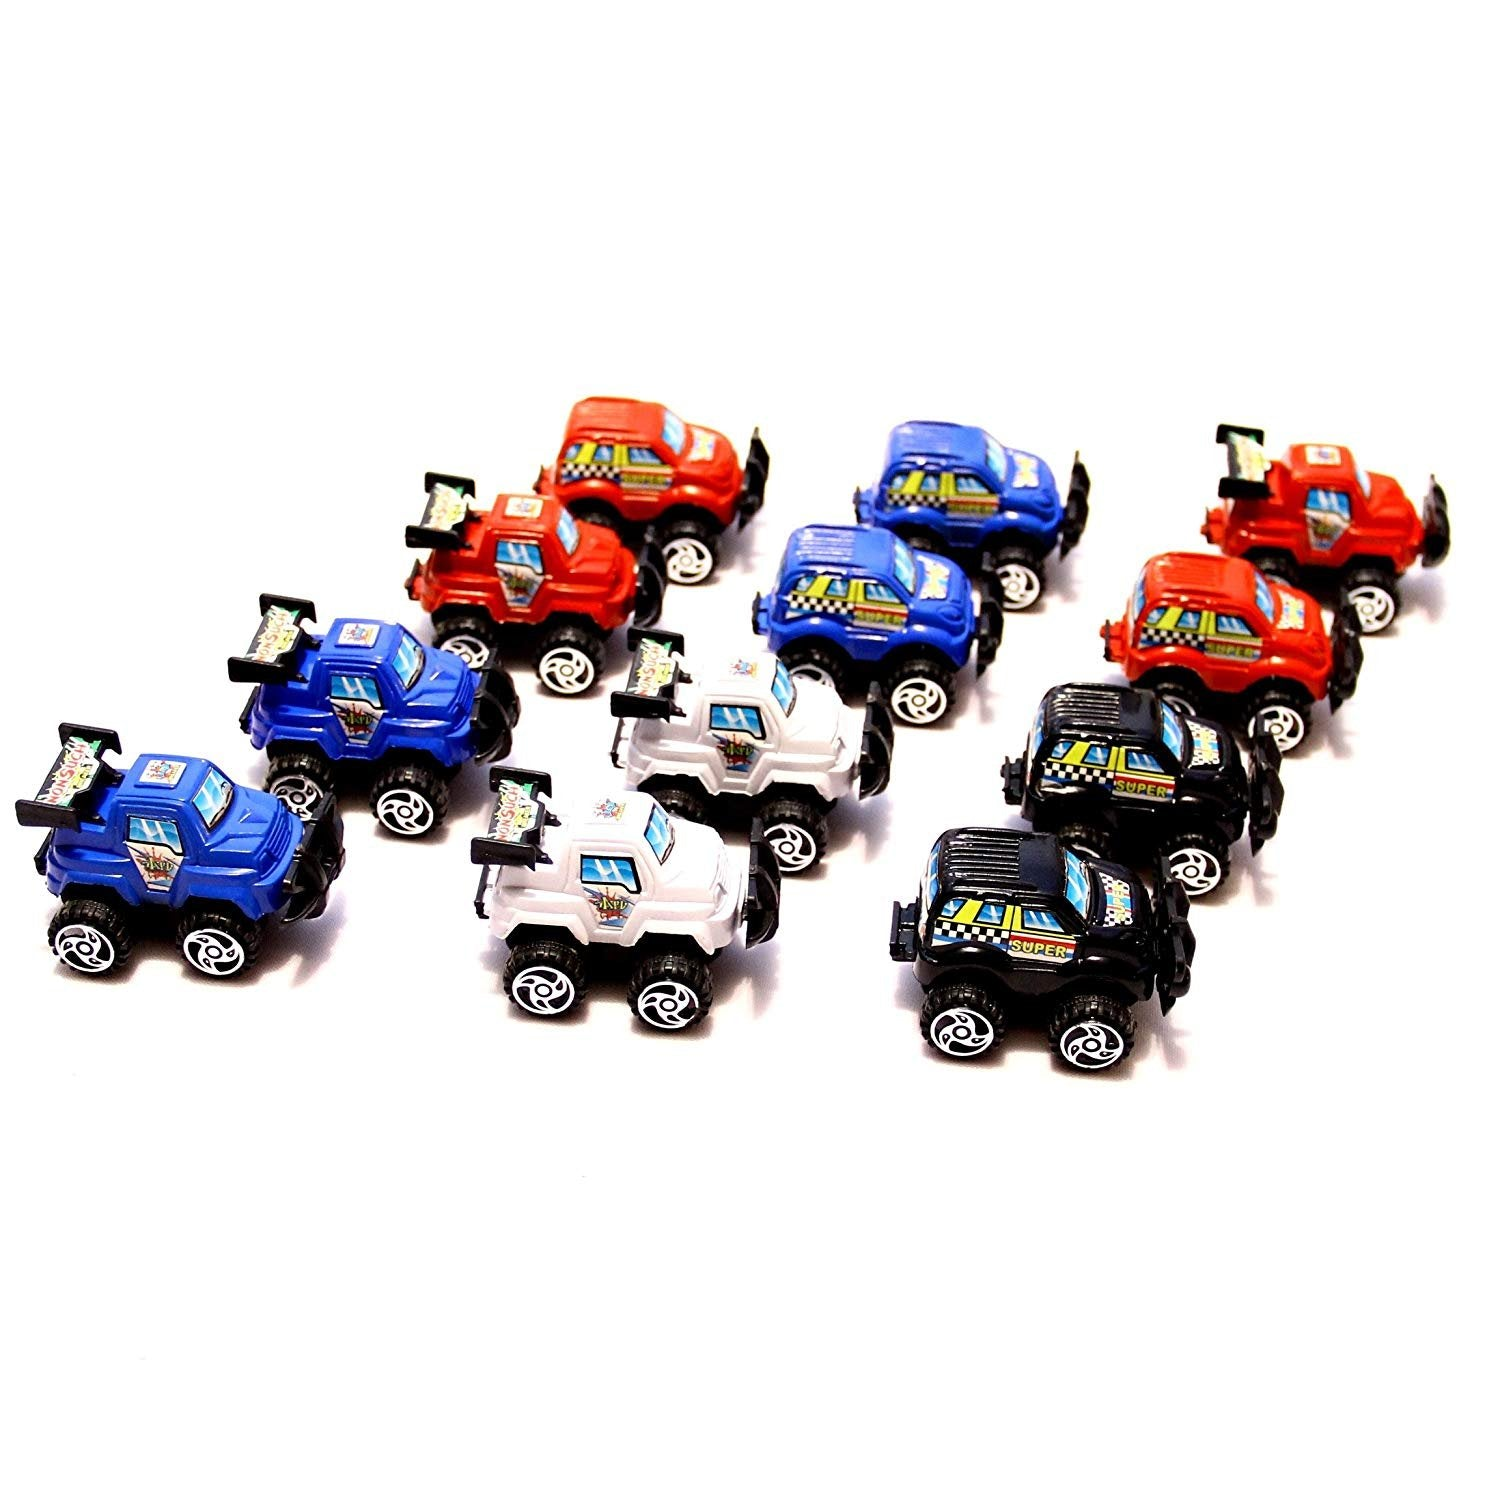 dazzling toys Mini Cars Pull Back & Let Go Race Cars 12 Pack | Assorted Car Colors: Red, White, Blue and Black, 3-4 Inch Cars | Easter Egg Filler